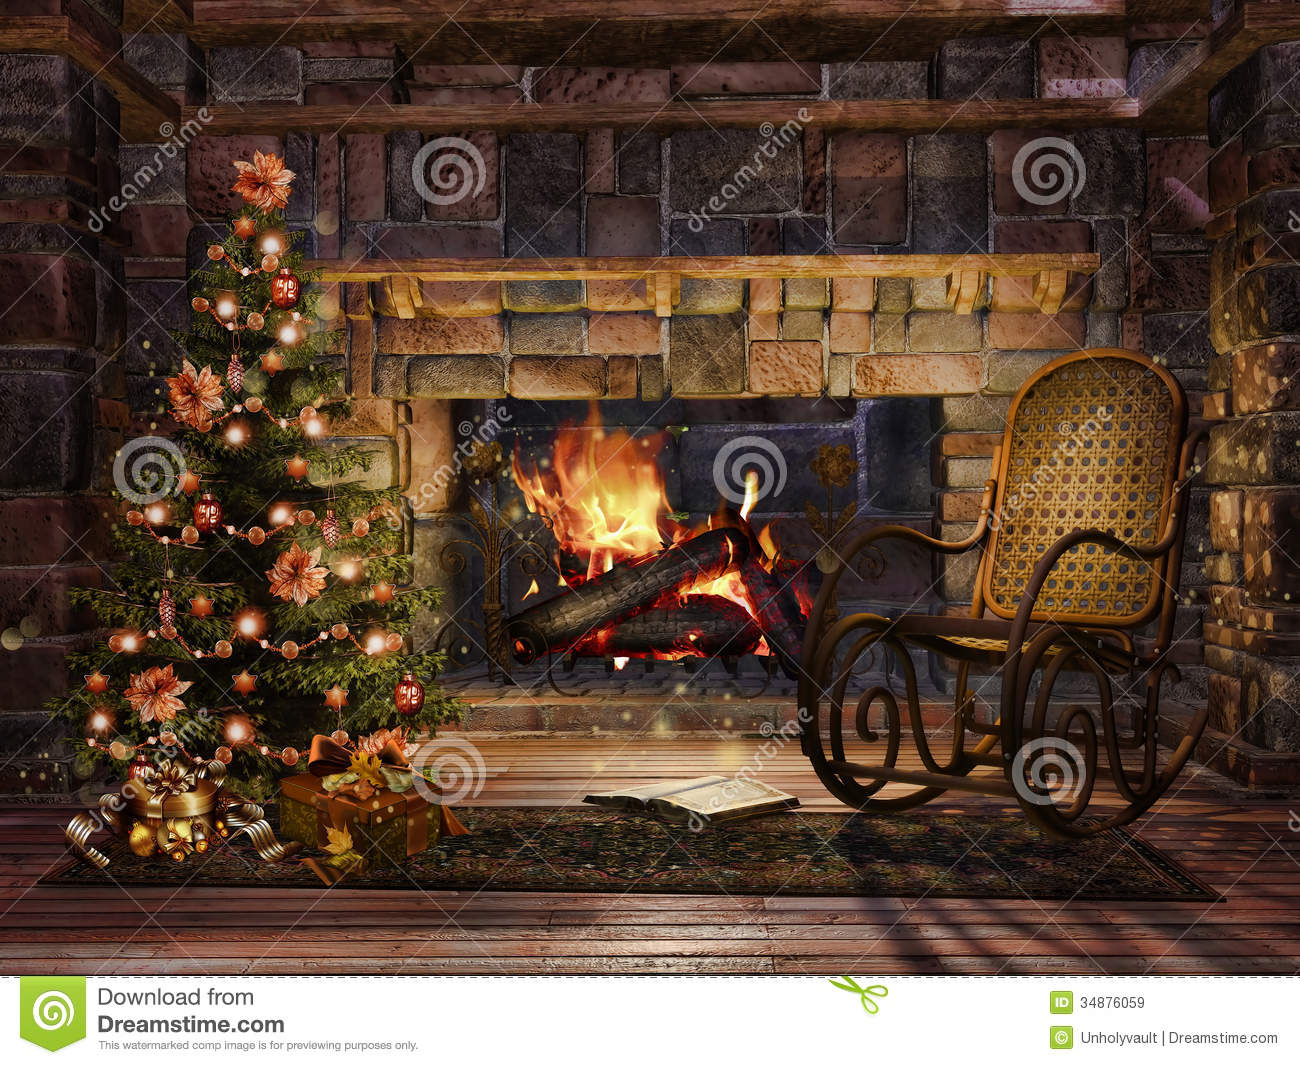 Free Animated Fireplace Wallpaper Cottage Room With A Christmas Tree Royalty Free Stock